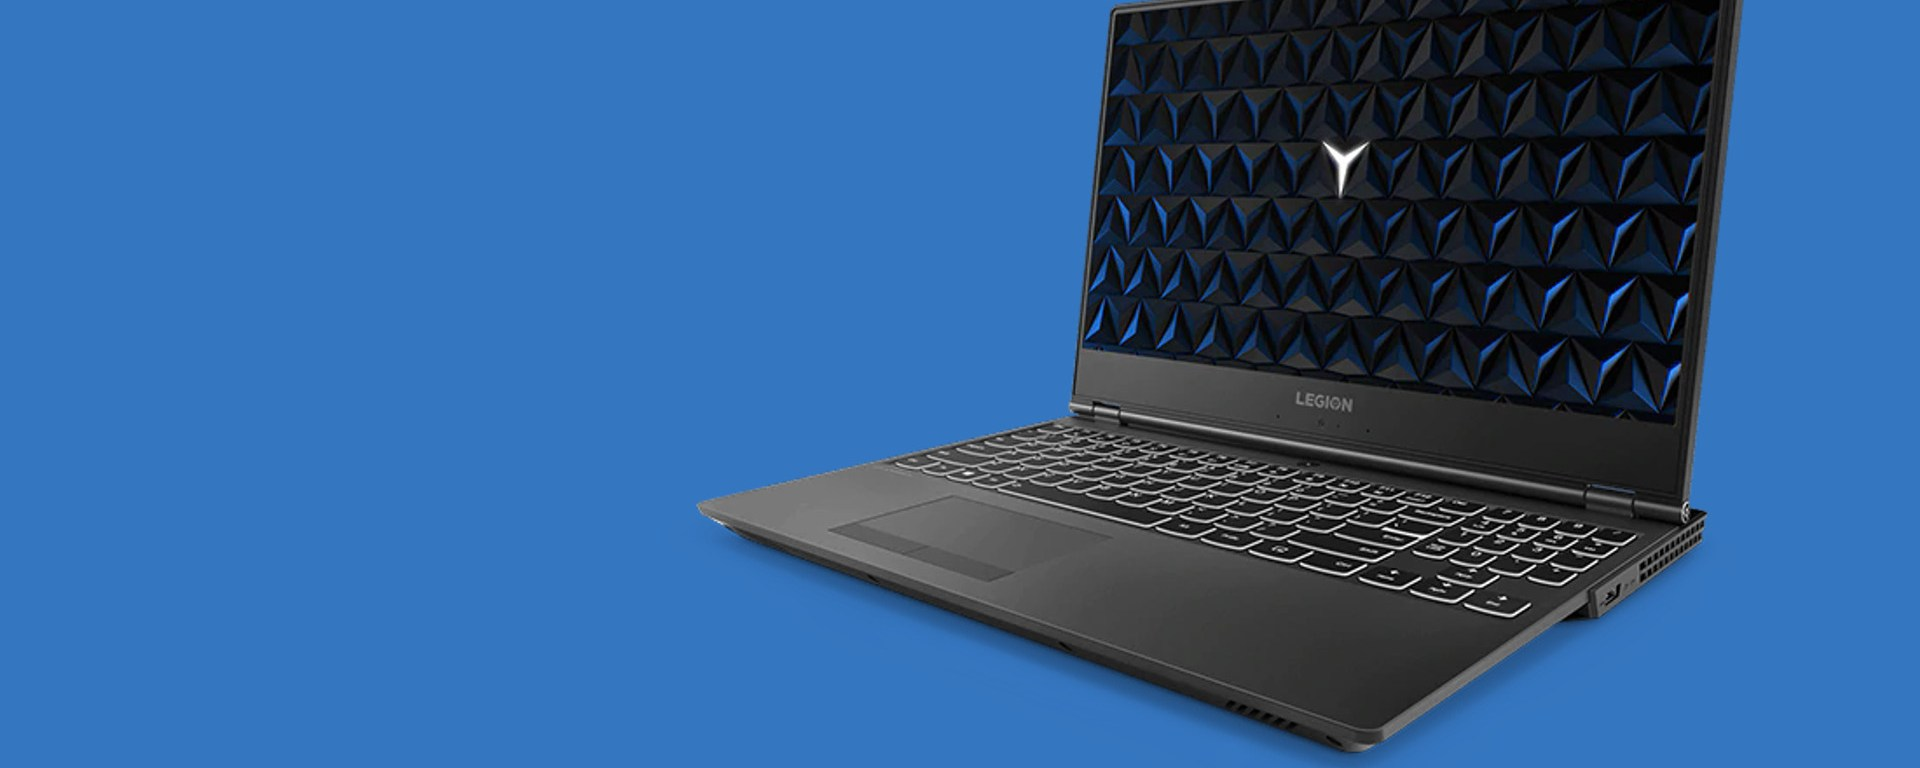 Lenovo Legion Y530 Review [2019] - Gaming Hardware Reviews